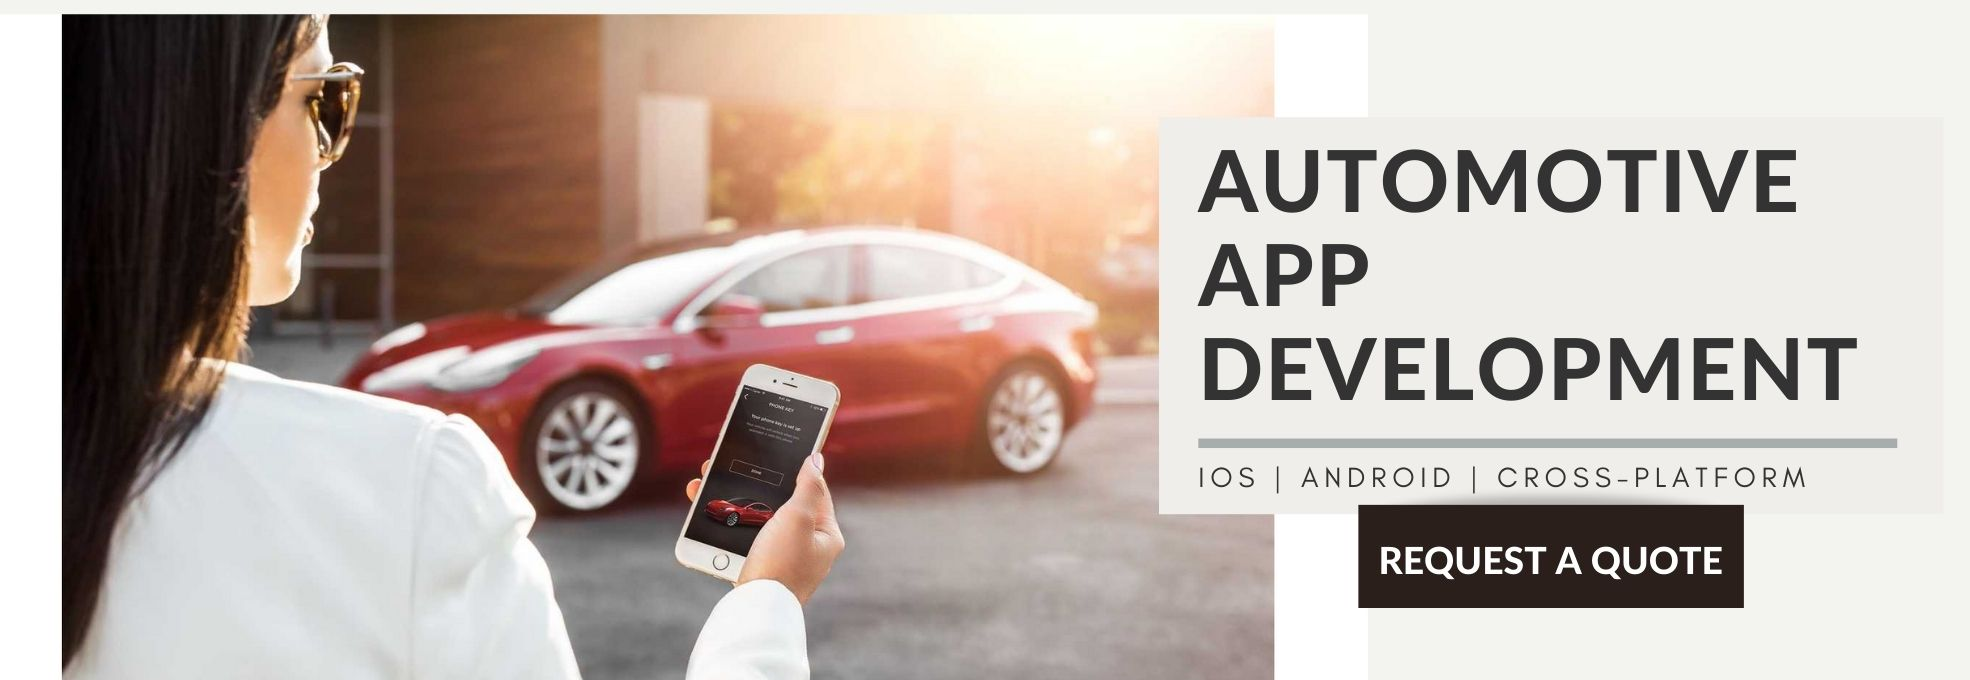 automotive-apps-development